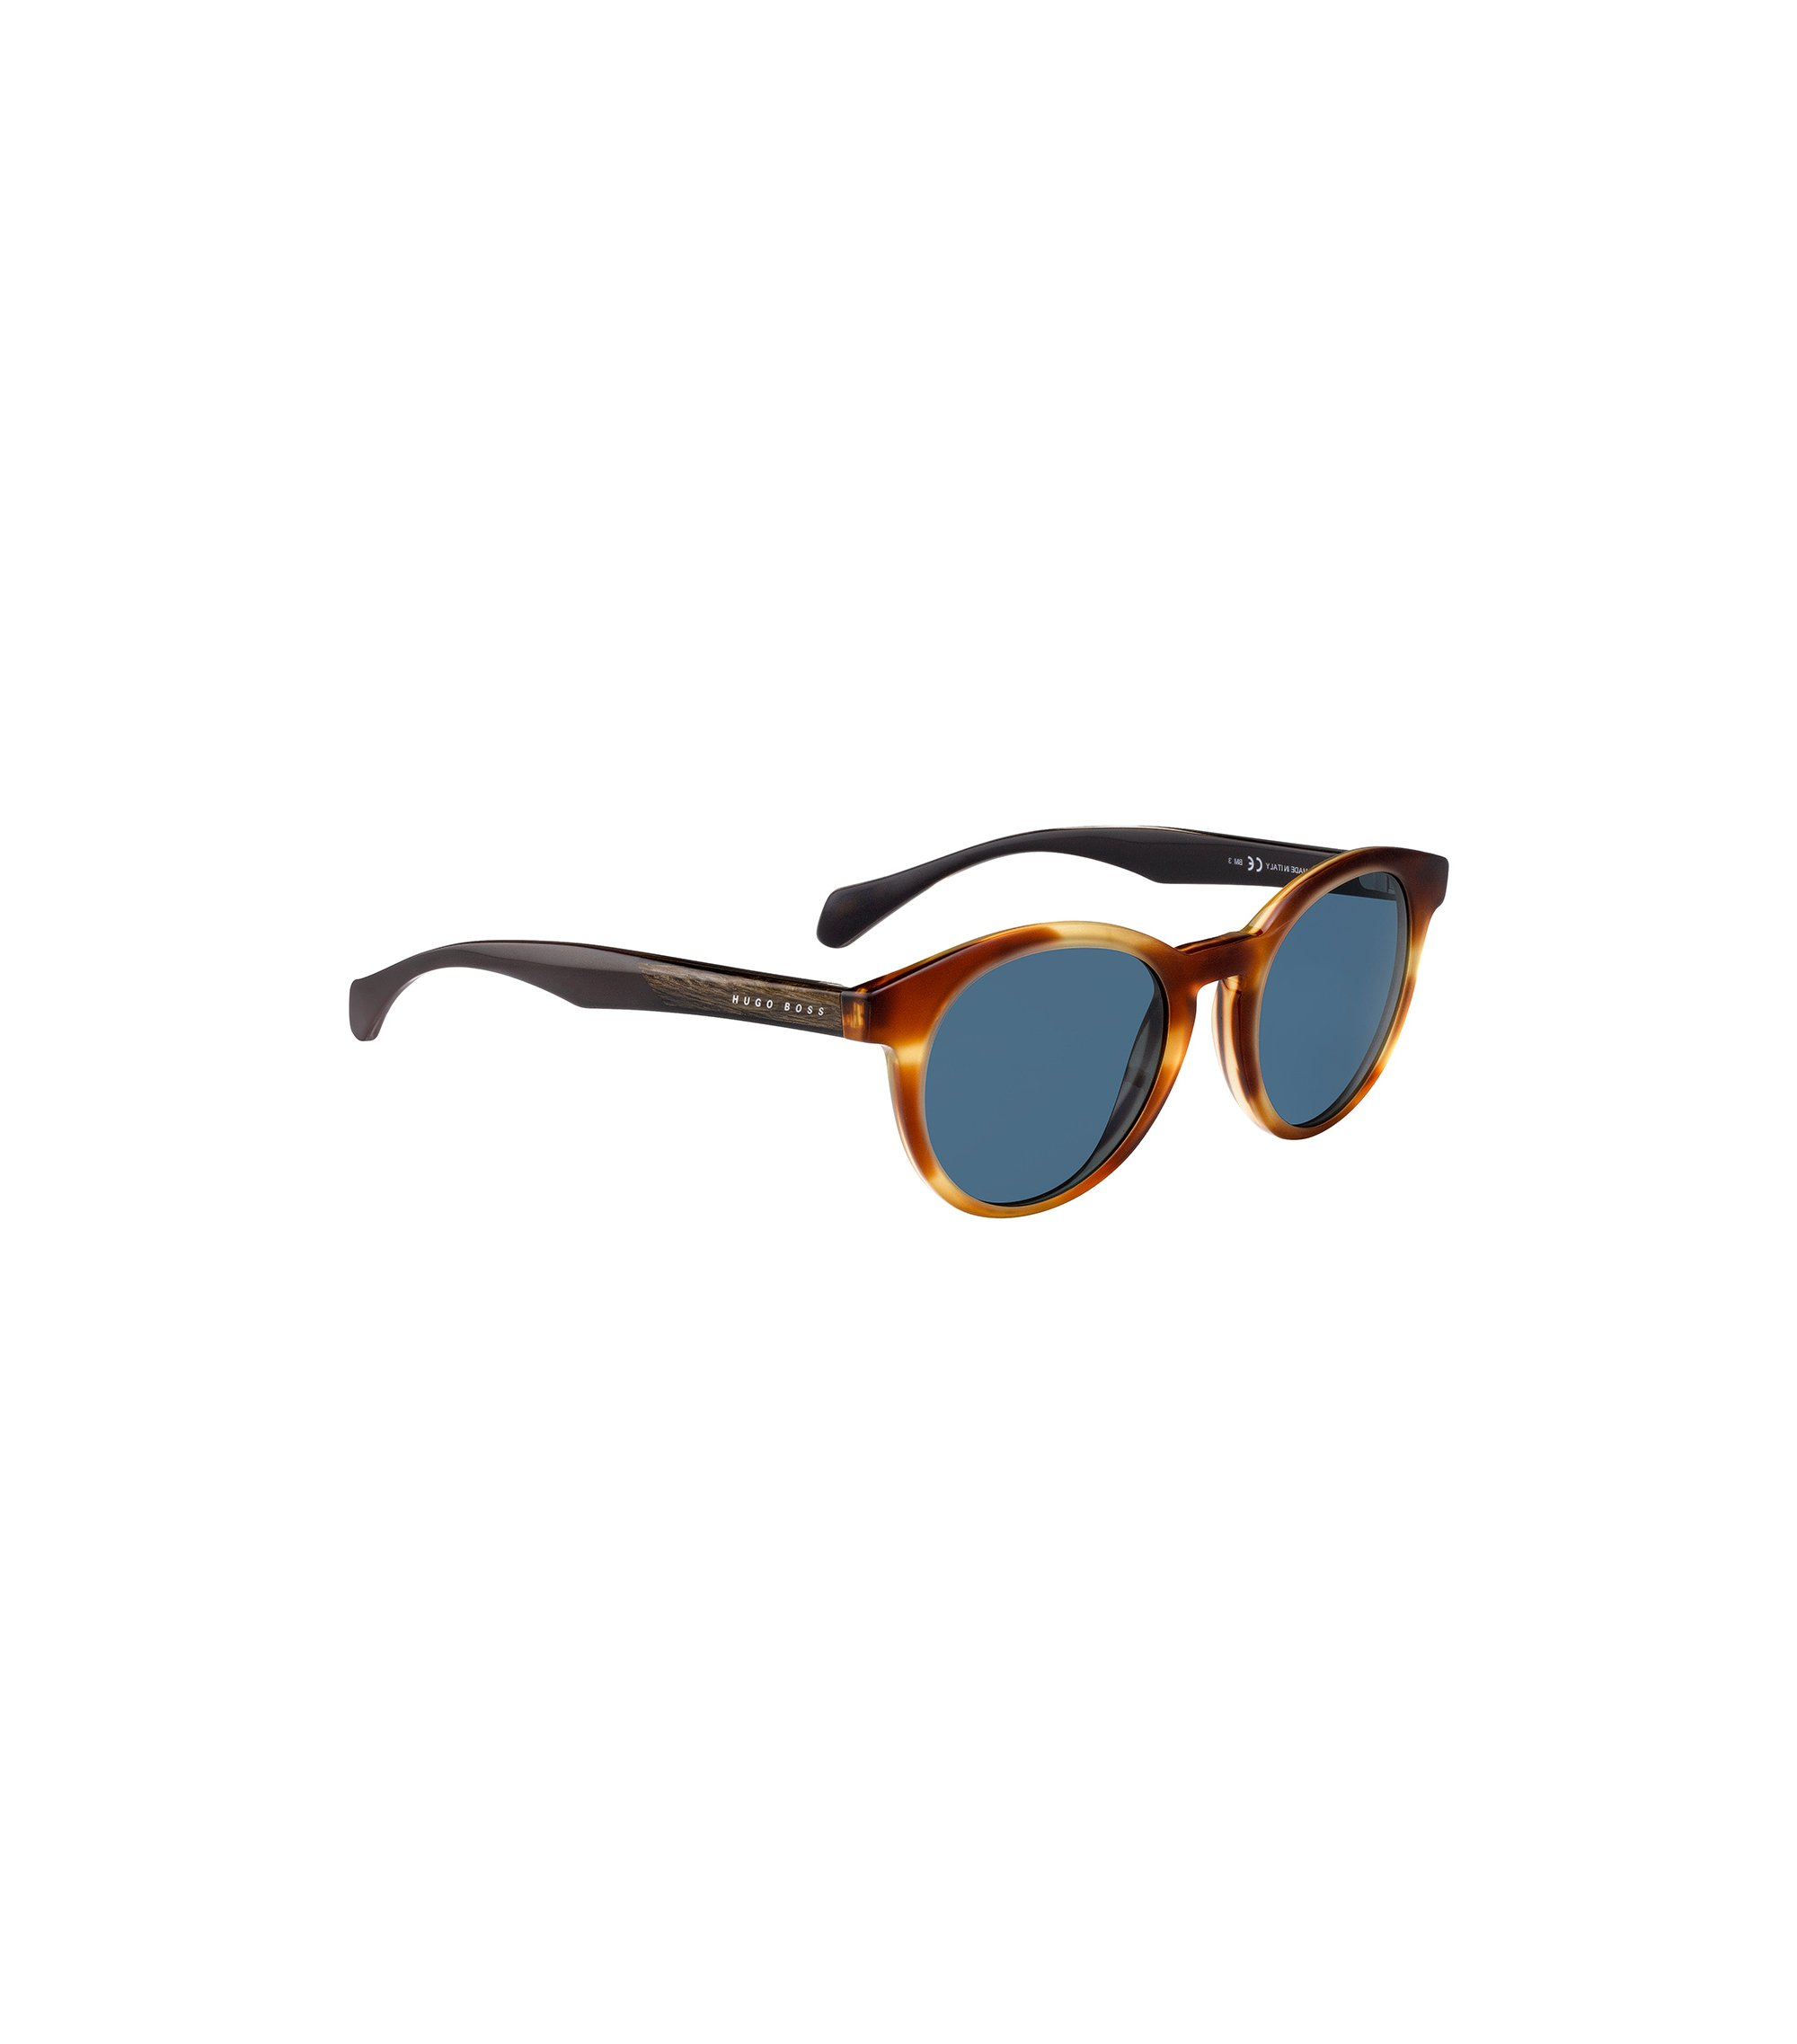 Horn Acetate Round Sunglasses, Assorted-Pre-Pack